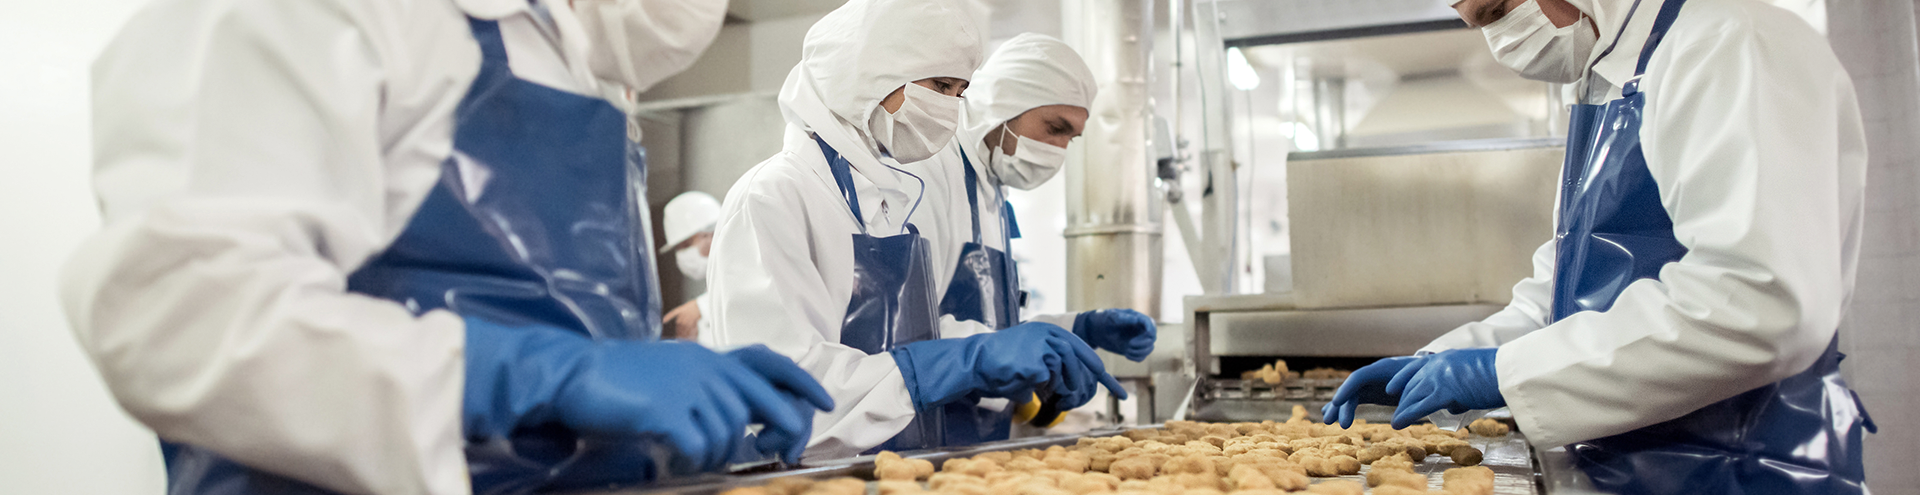 Workers in sanitary uniforms inspecting a conveyor belt of food at a food processing facility.